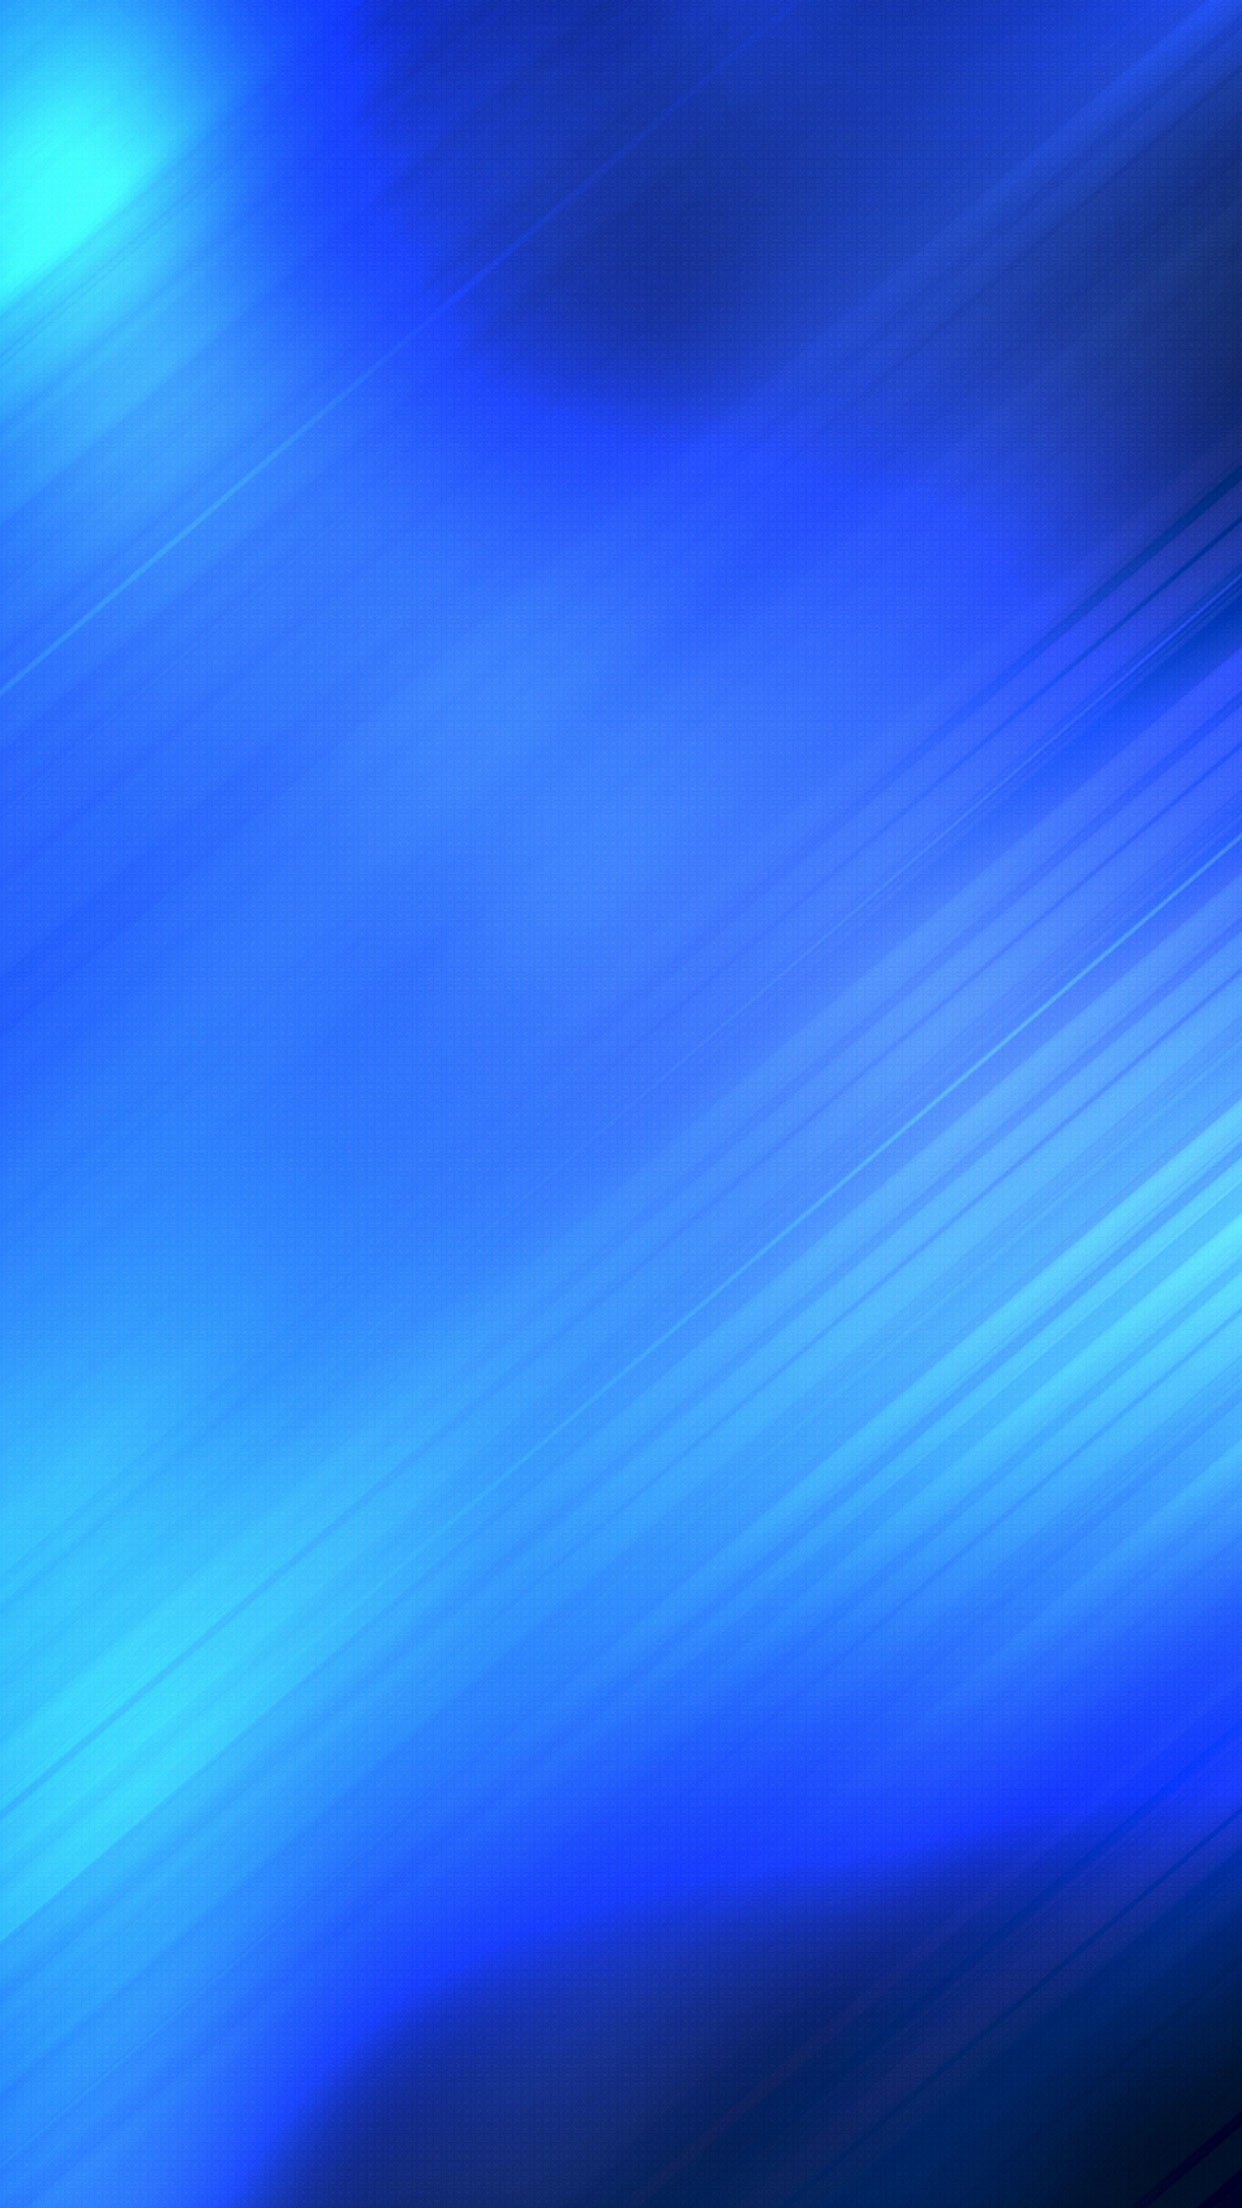 1242x2208 Blue Abstract lines wallpaper #Iphone #android #blue #abstract #wallpaper  check more